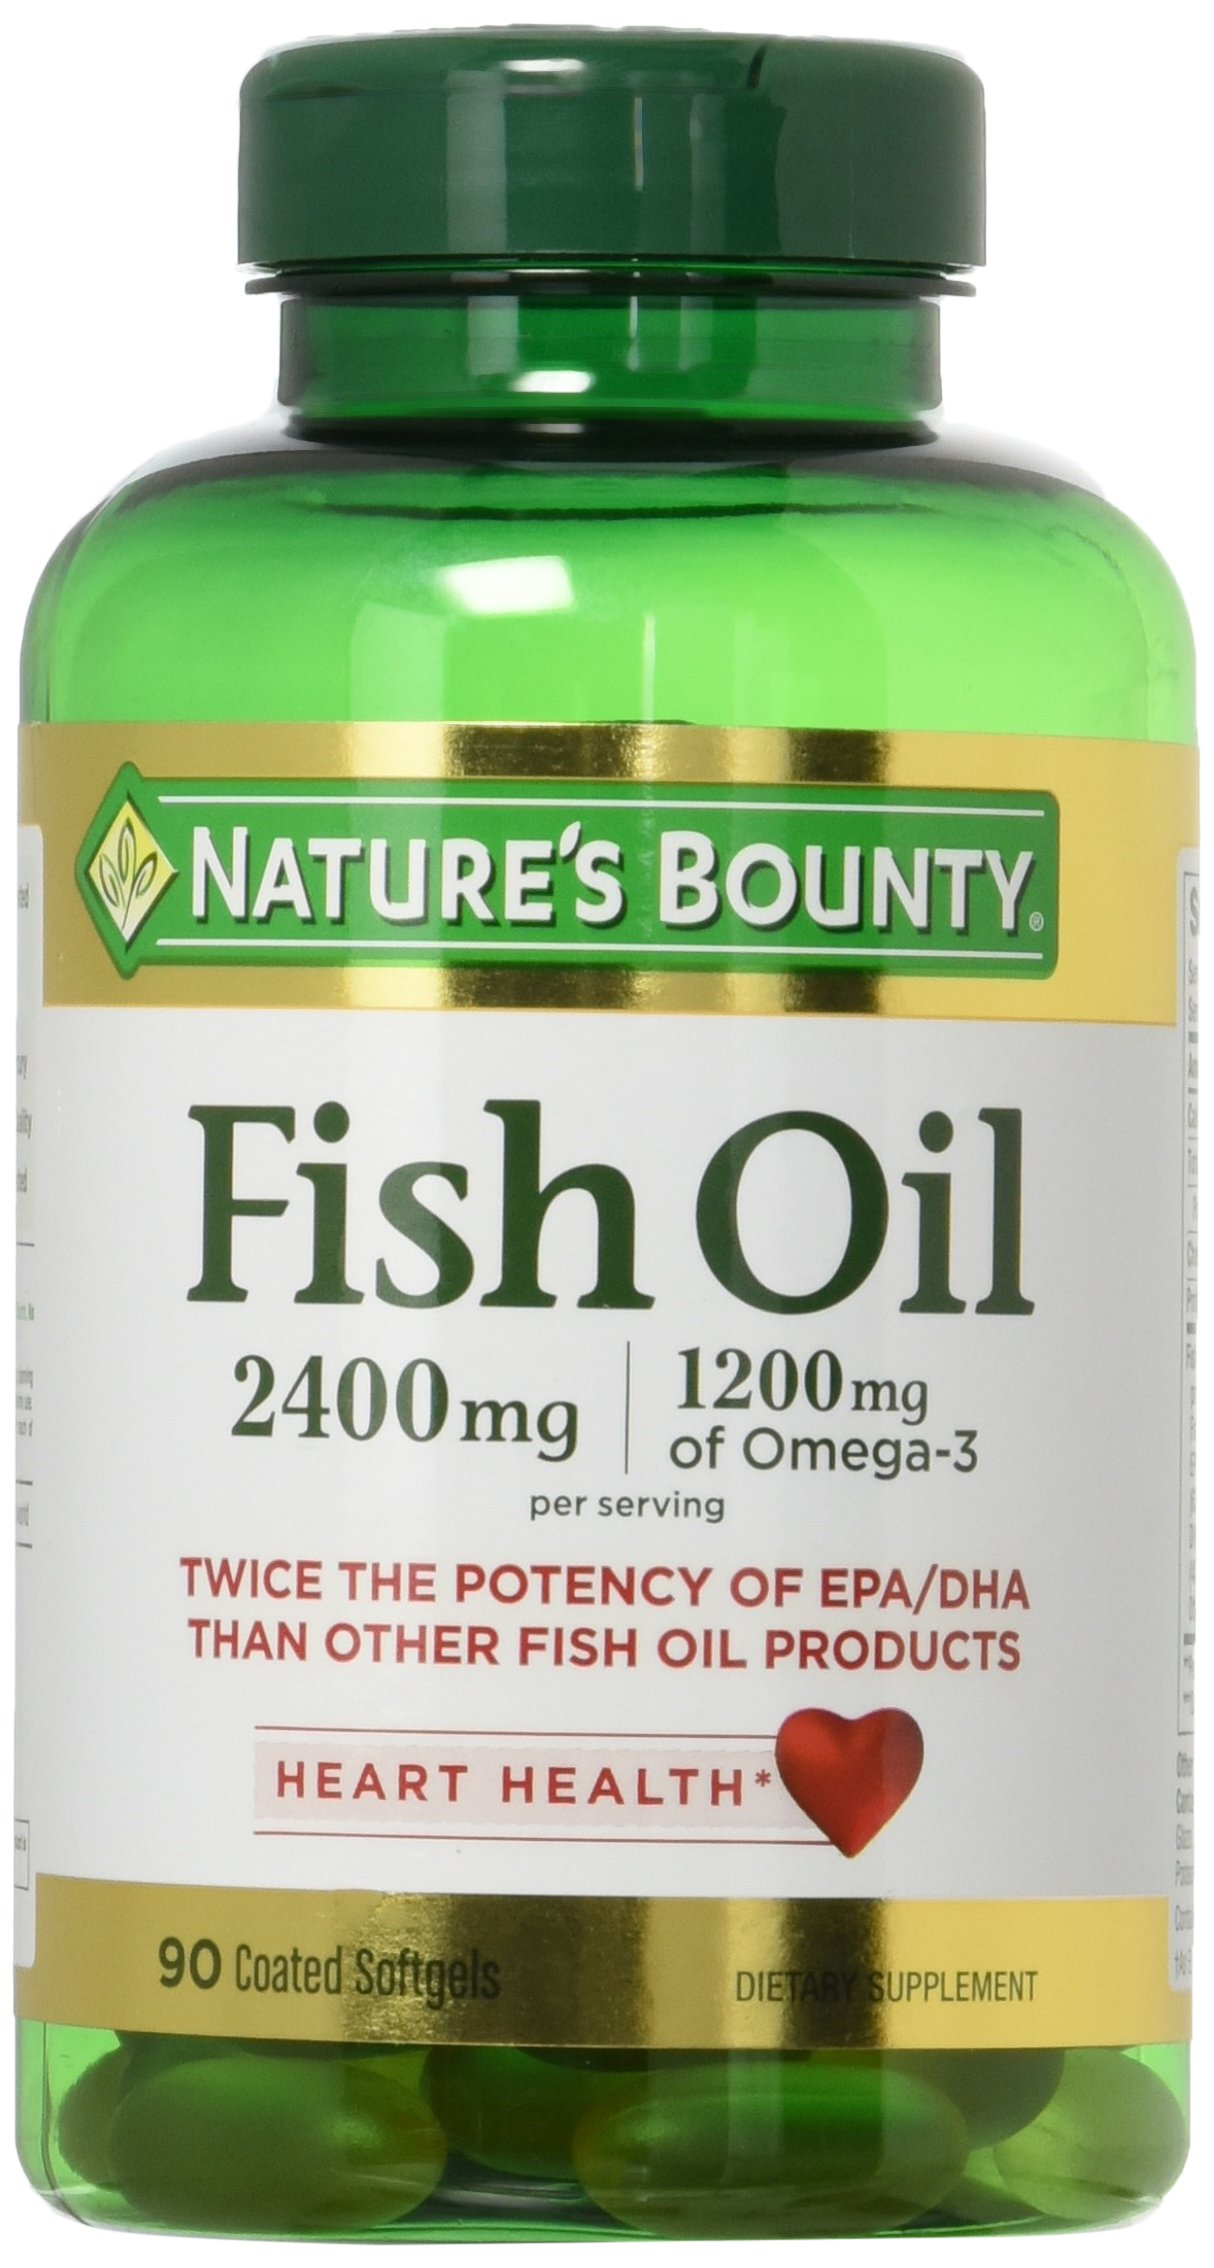 Natures Bounty Fish Oil 2400 mg Double Strength Odorless 90 Softgels (Pack of 2) by Nature's Bounty